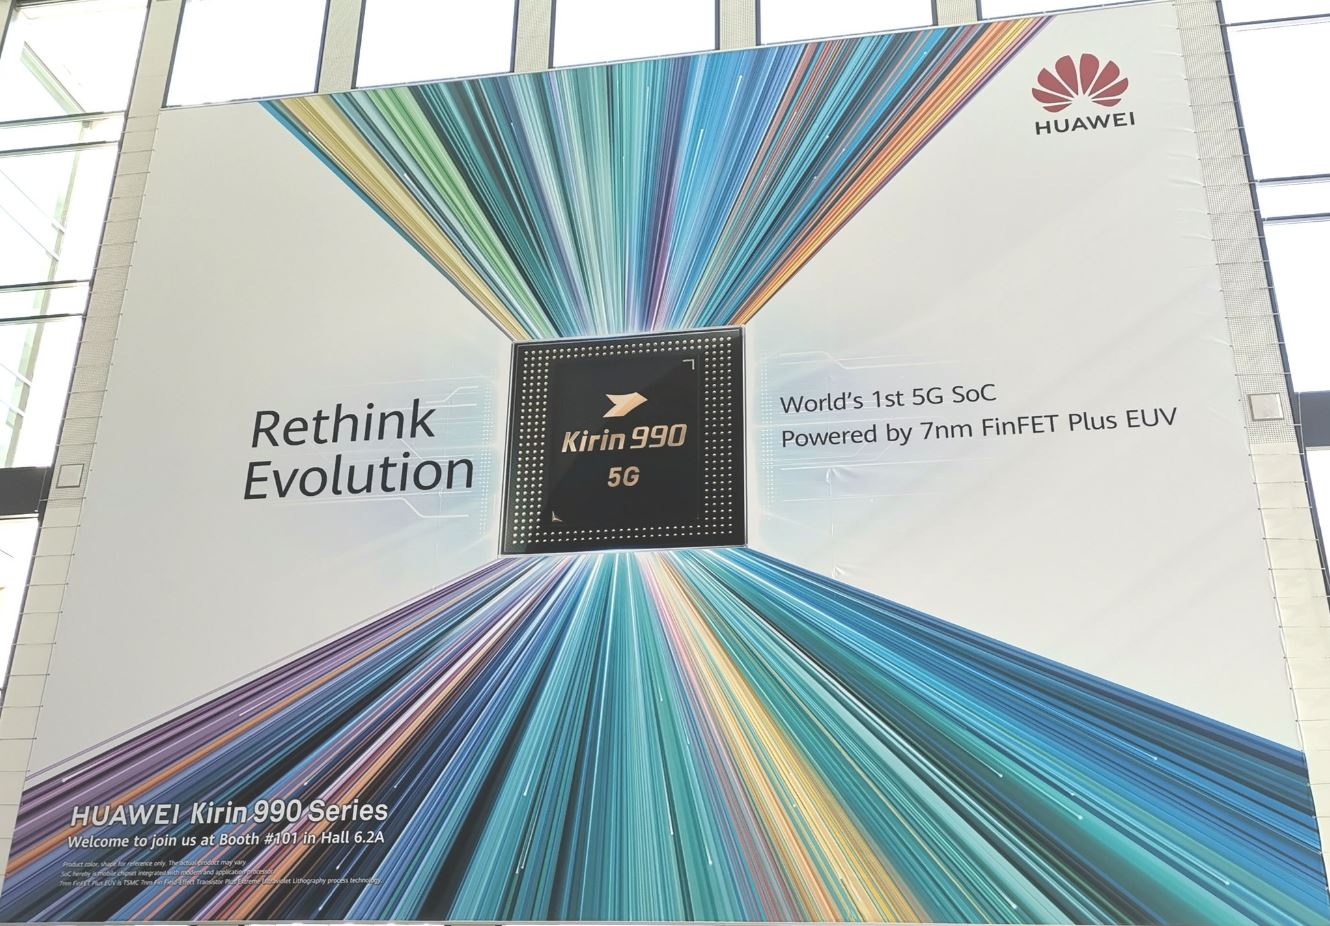 Sforum - Latest technology information page huawei-2 After Samsung, Huawei is also ready to launch integrated 5G modem chip at IFA 2019